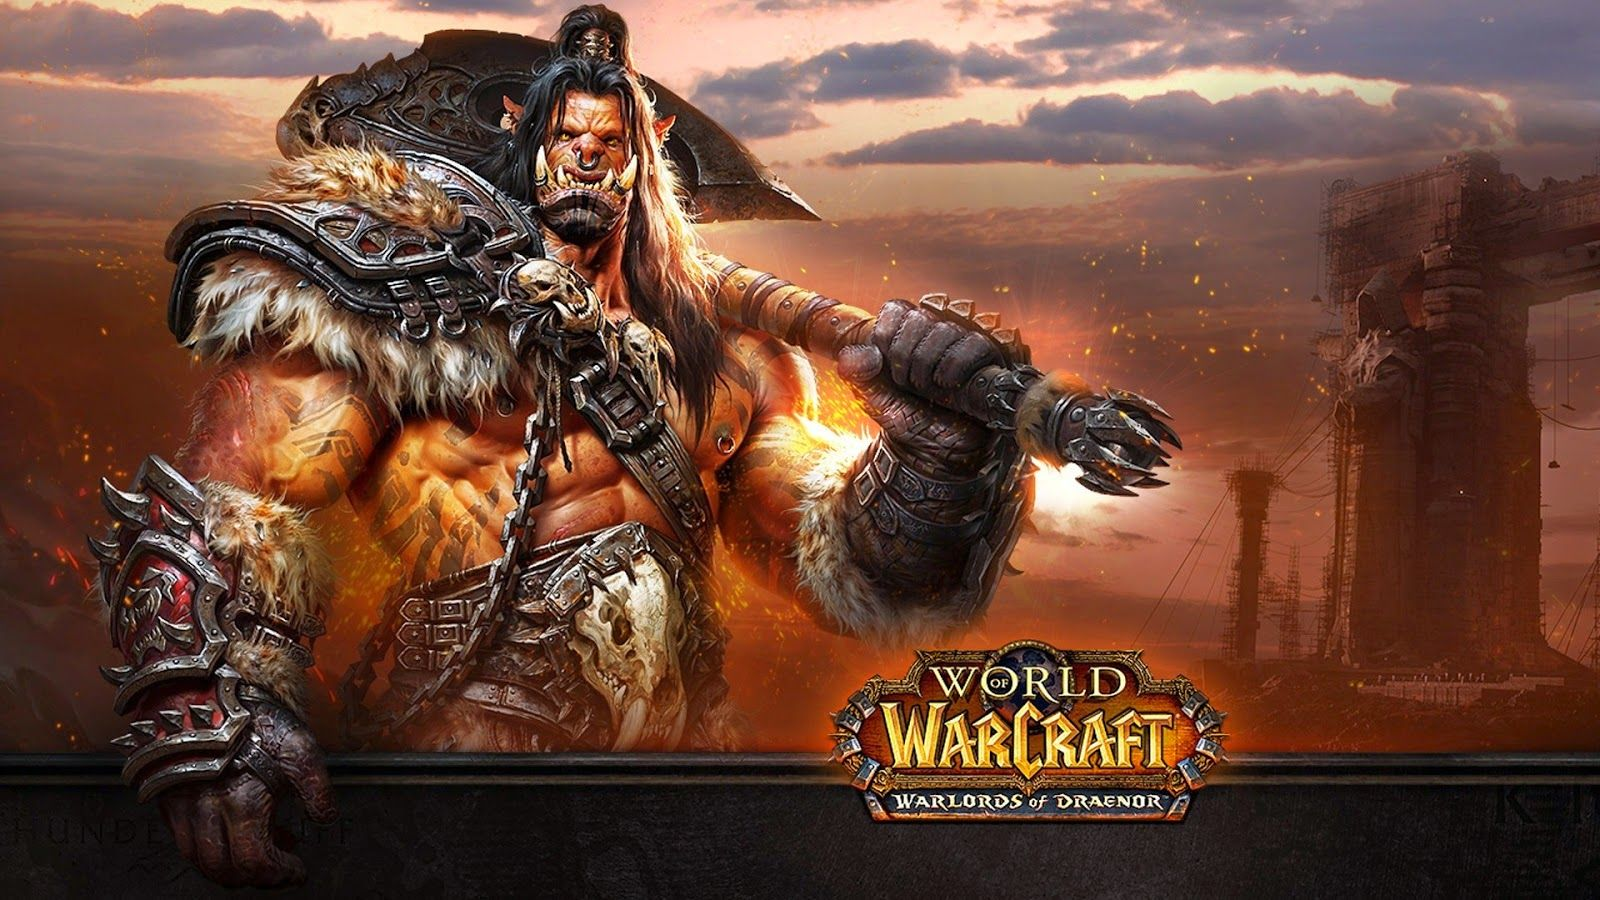 World of Warcraft Warlords KeyArt Wallpaper